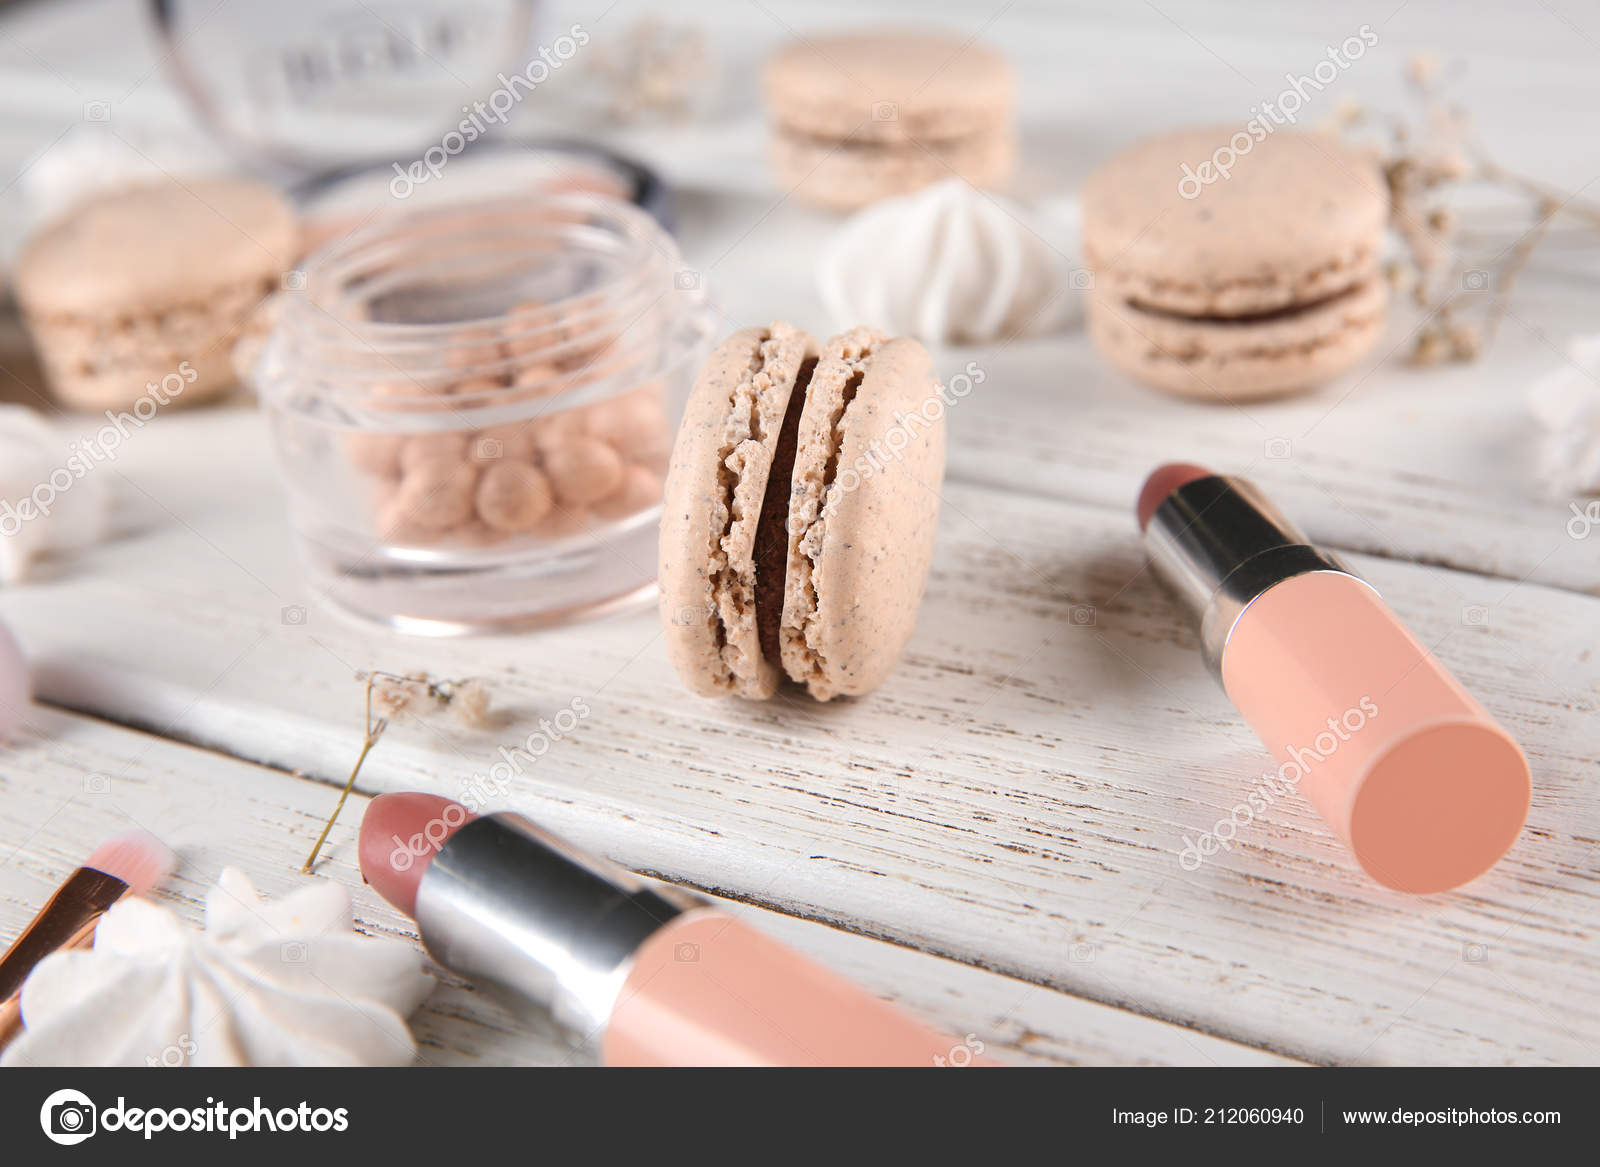 Tasty Macaron Makeup Products Wooden